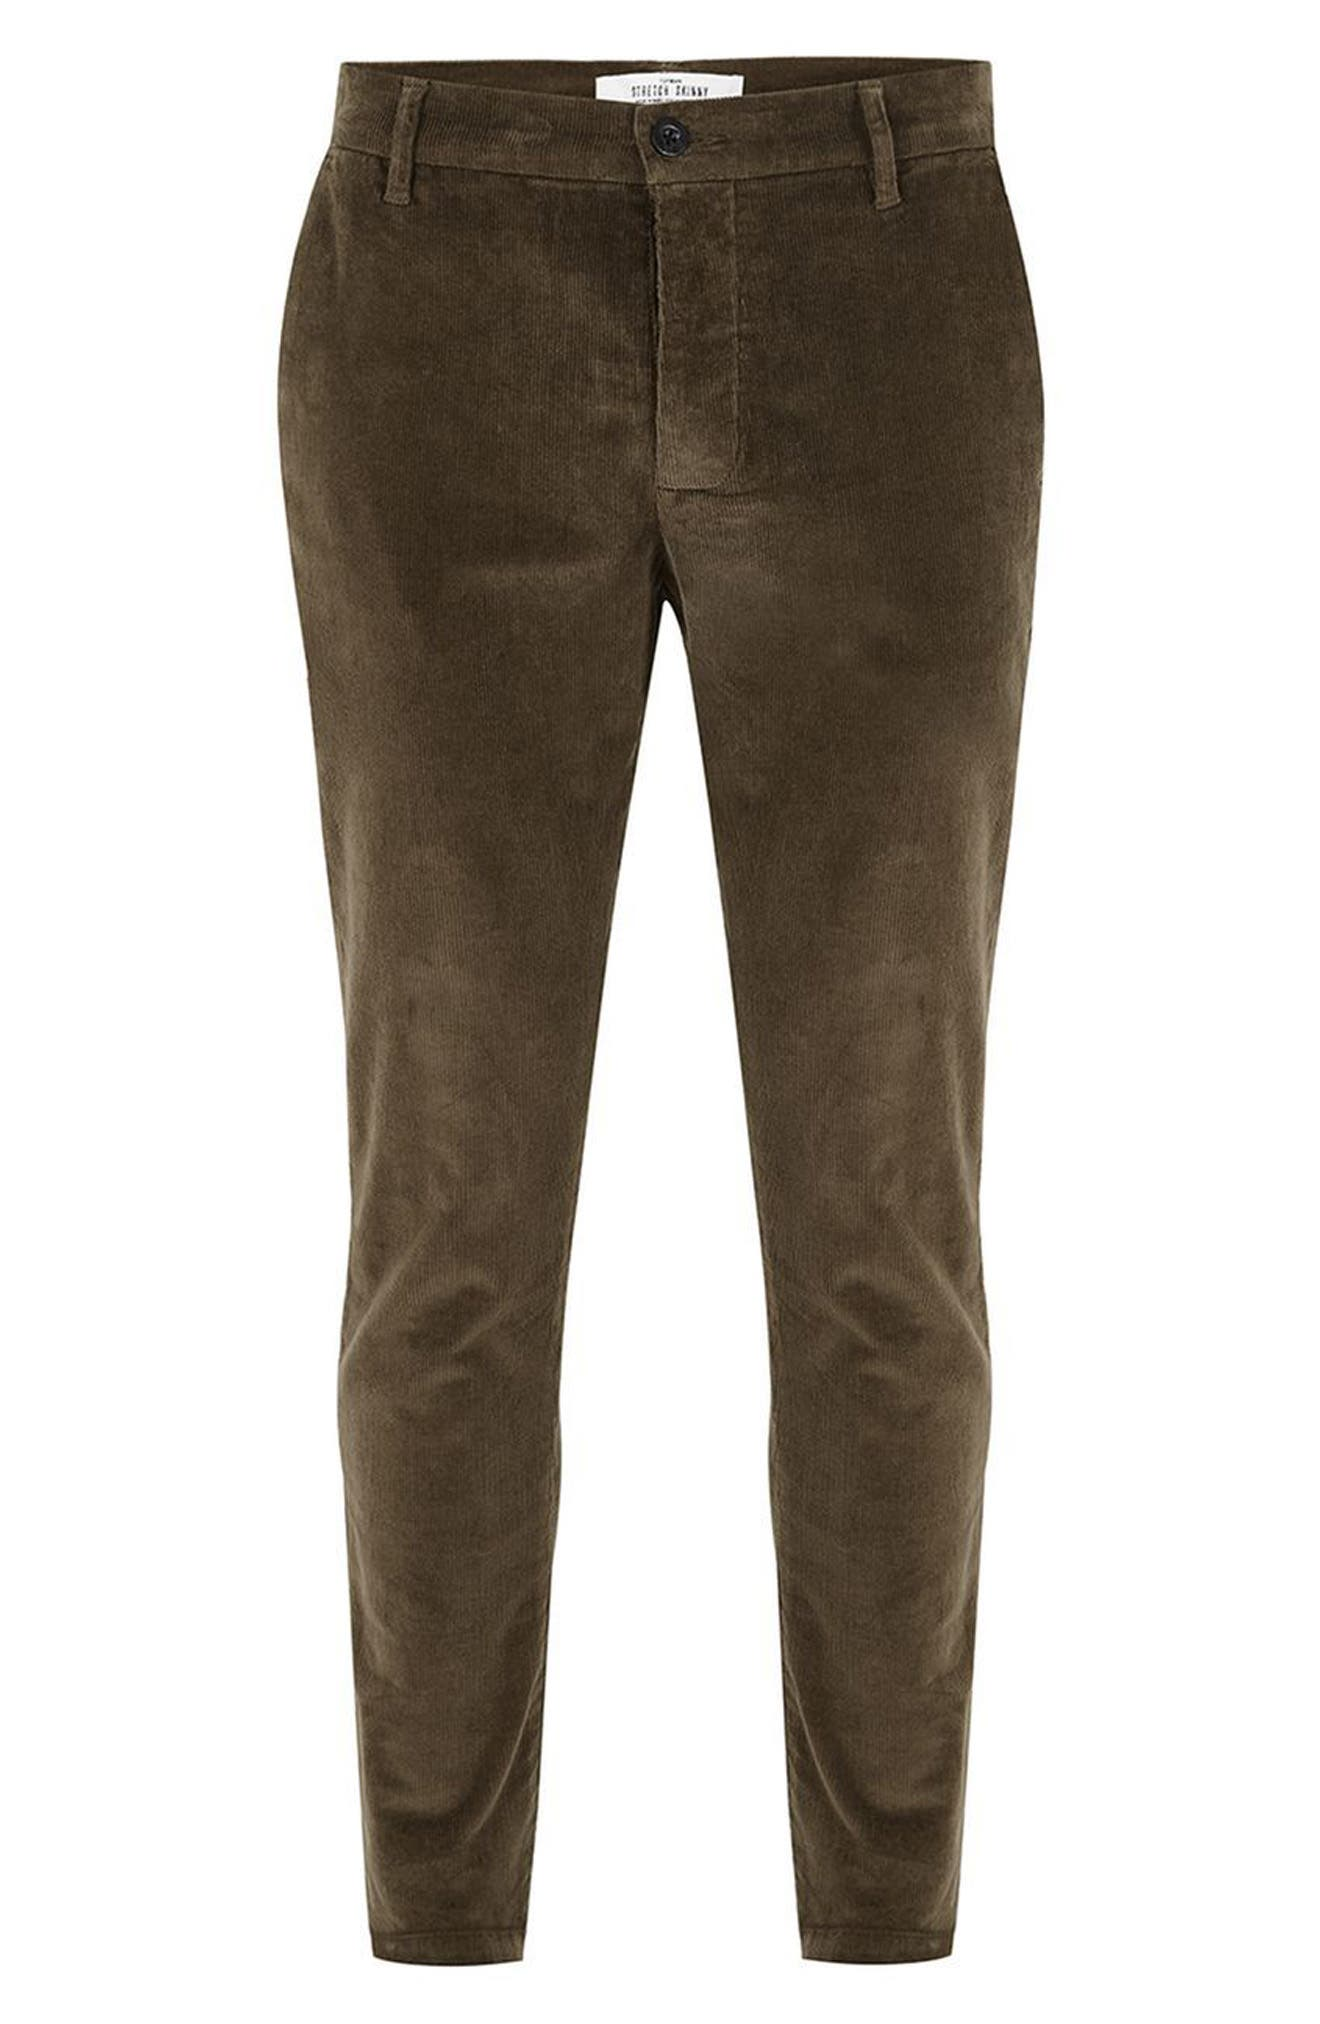 Skinny Fit Corduroy Trousers,                             Alternate thumbnail 7, color,